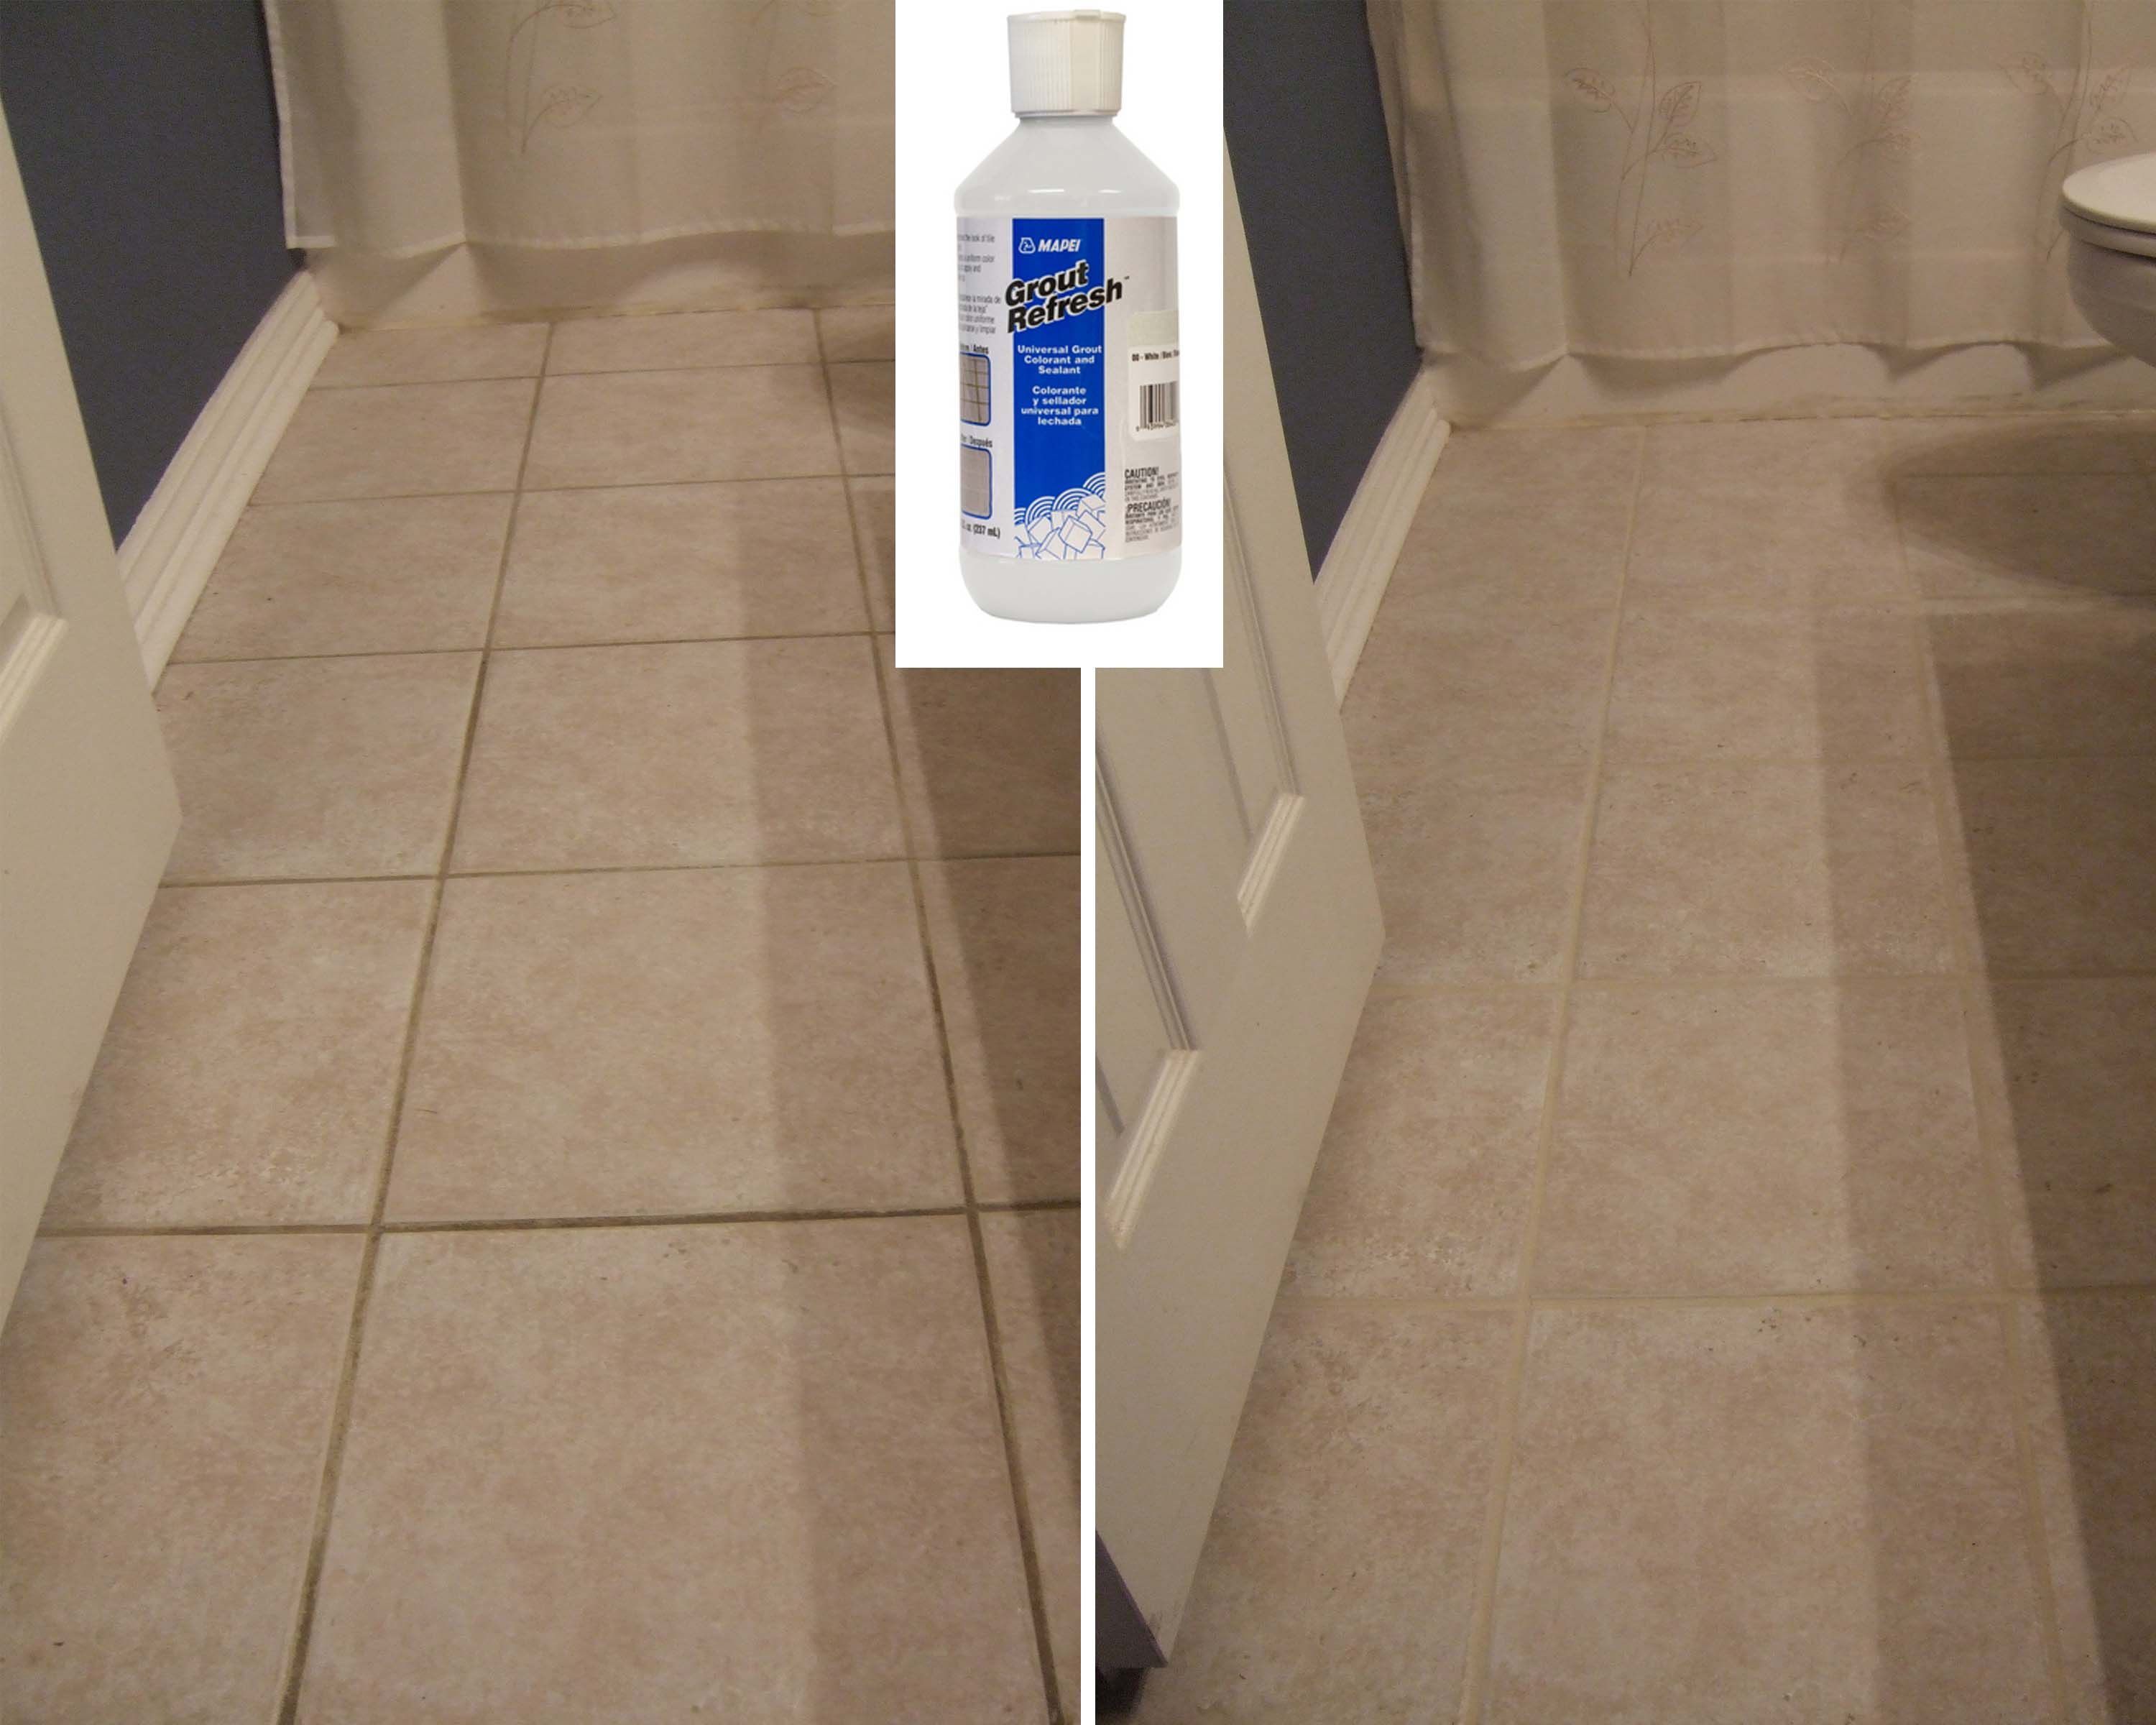 How to clean grout with peroxide baking soda grout clean how to clean grout with peroxide baking soda dailygadgetfo Image collections